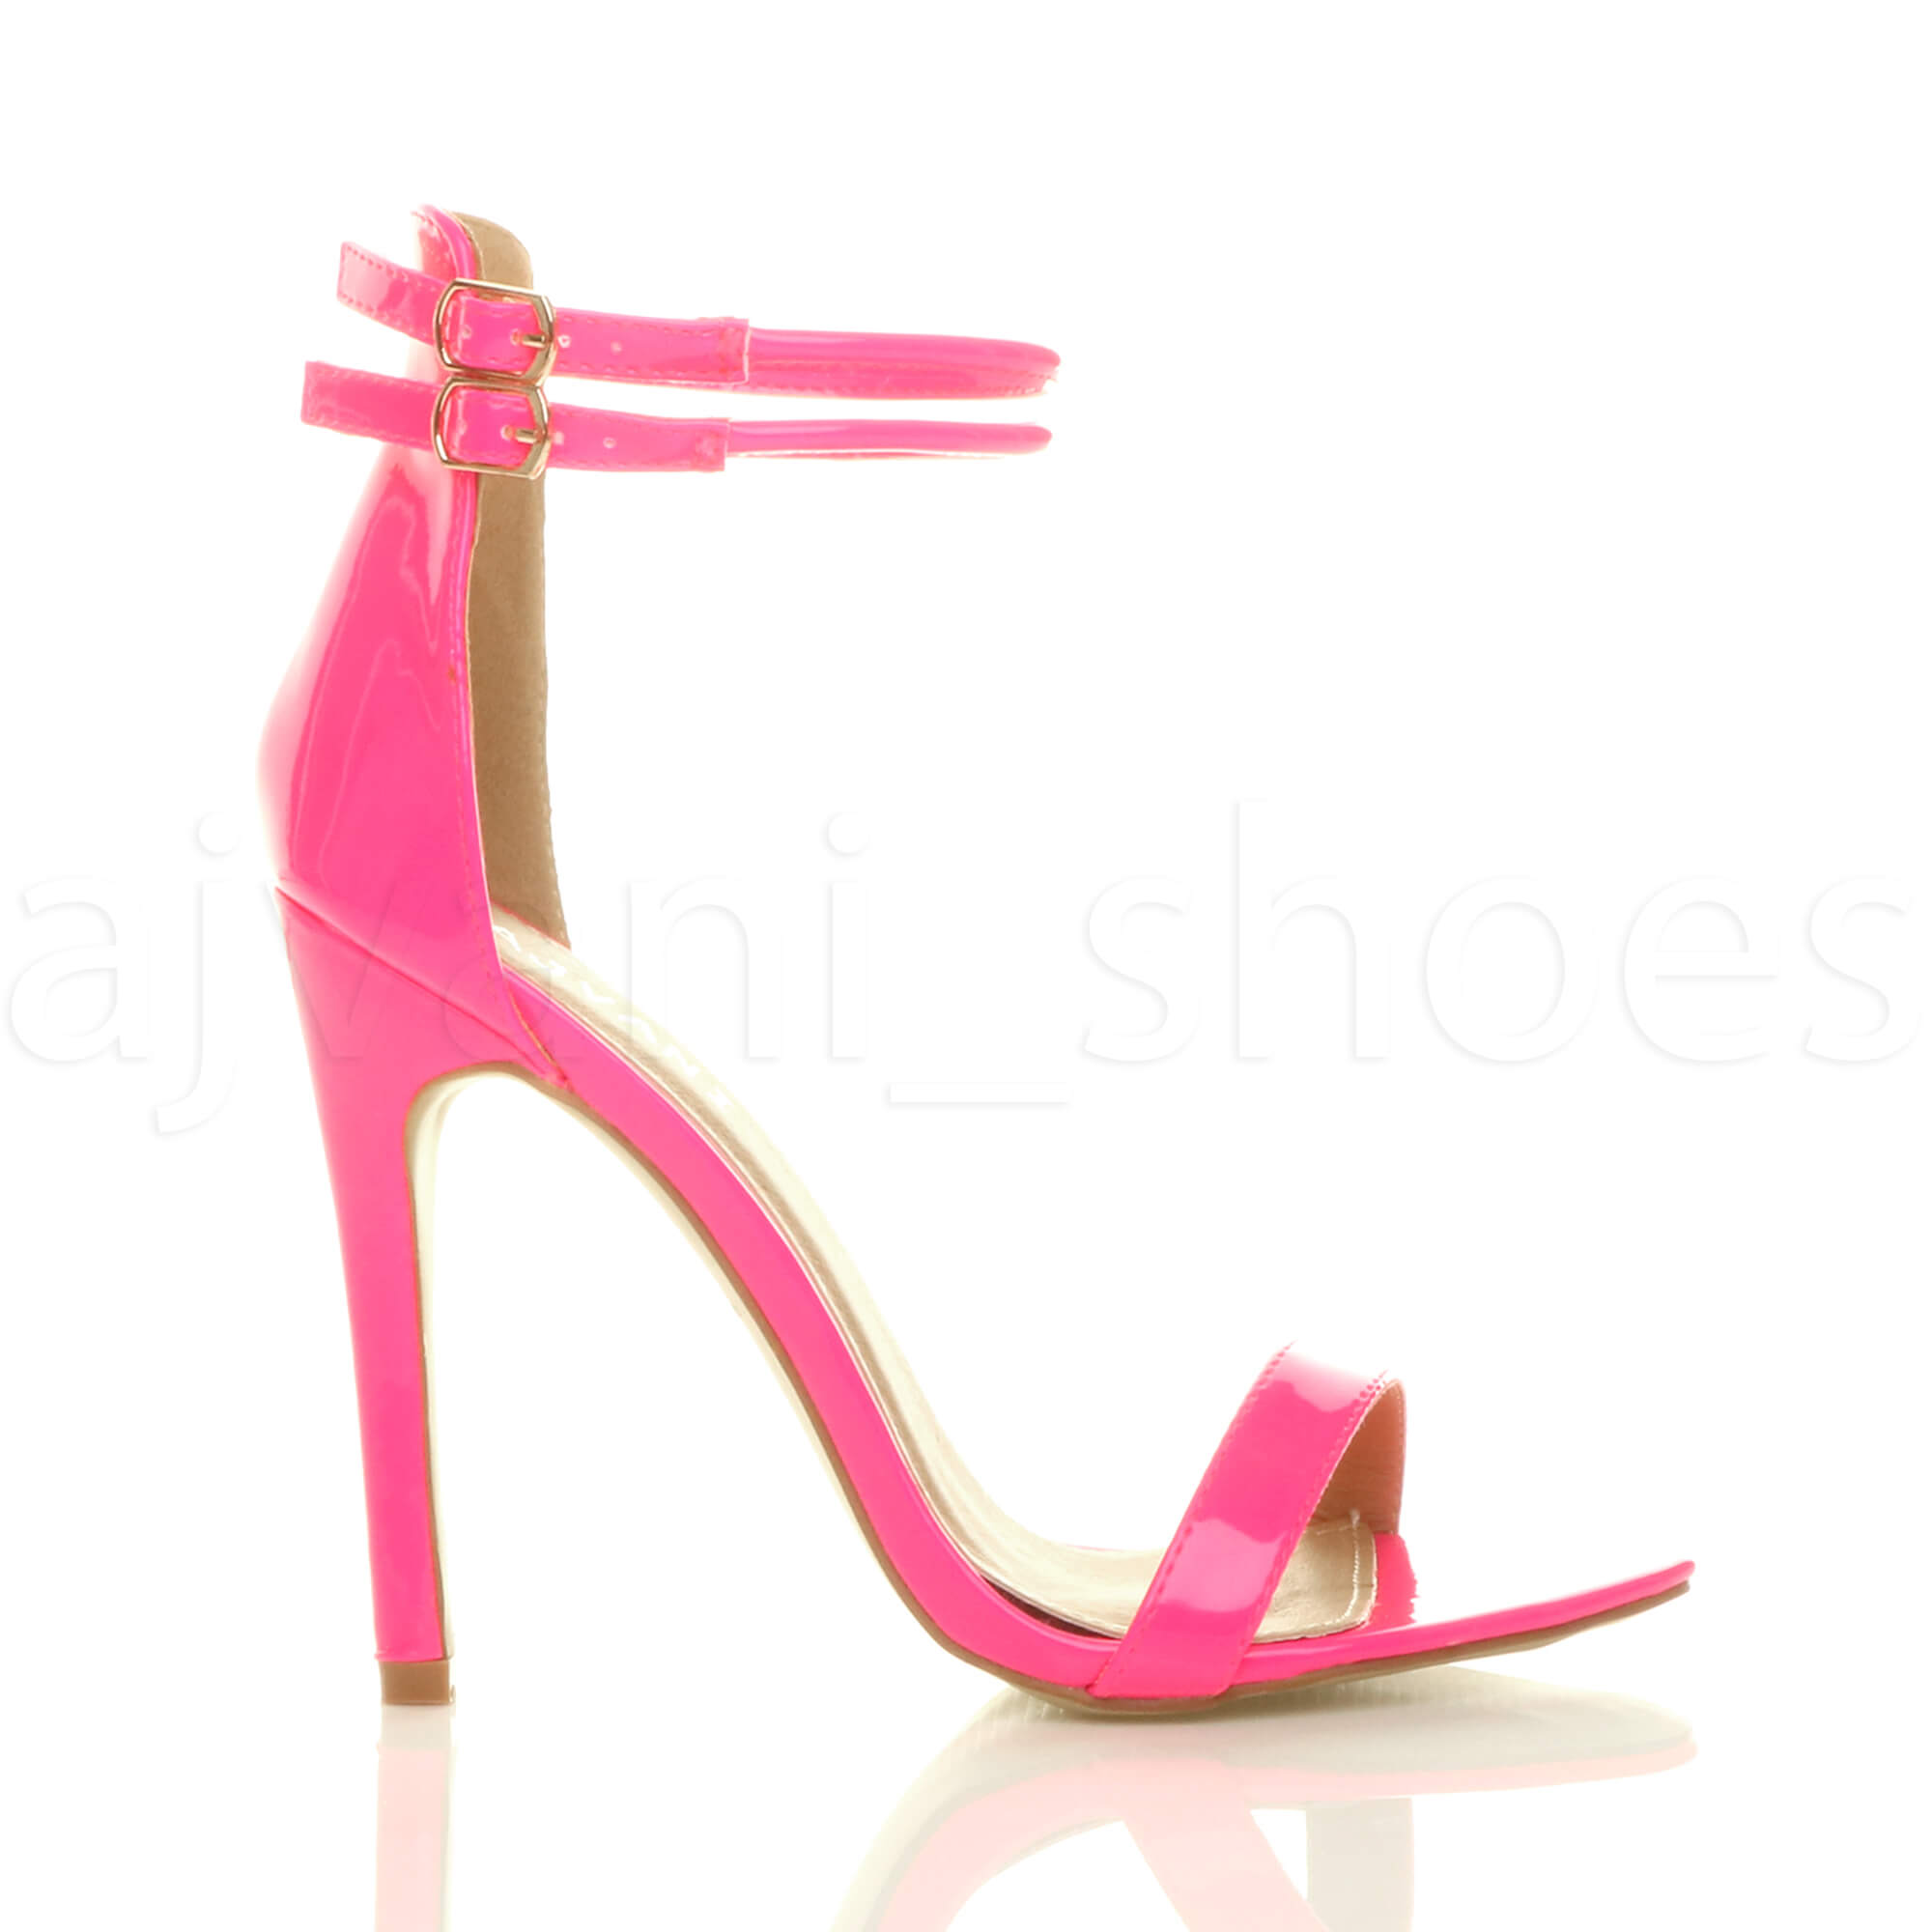 WOMENS-LADIES-BARELY-THERE-HIGH-HEEL-ANKLE-BUCKLE-STRAPPY-PARTY-PROM-SANDALS